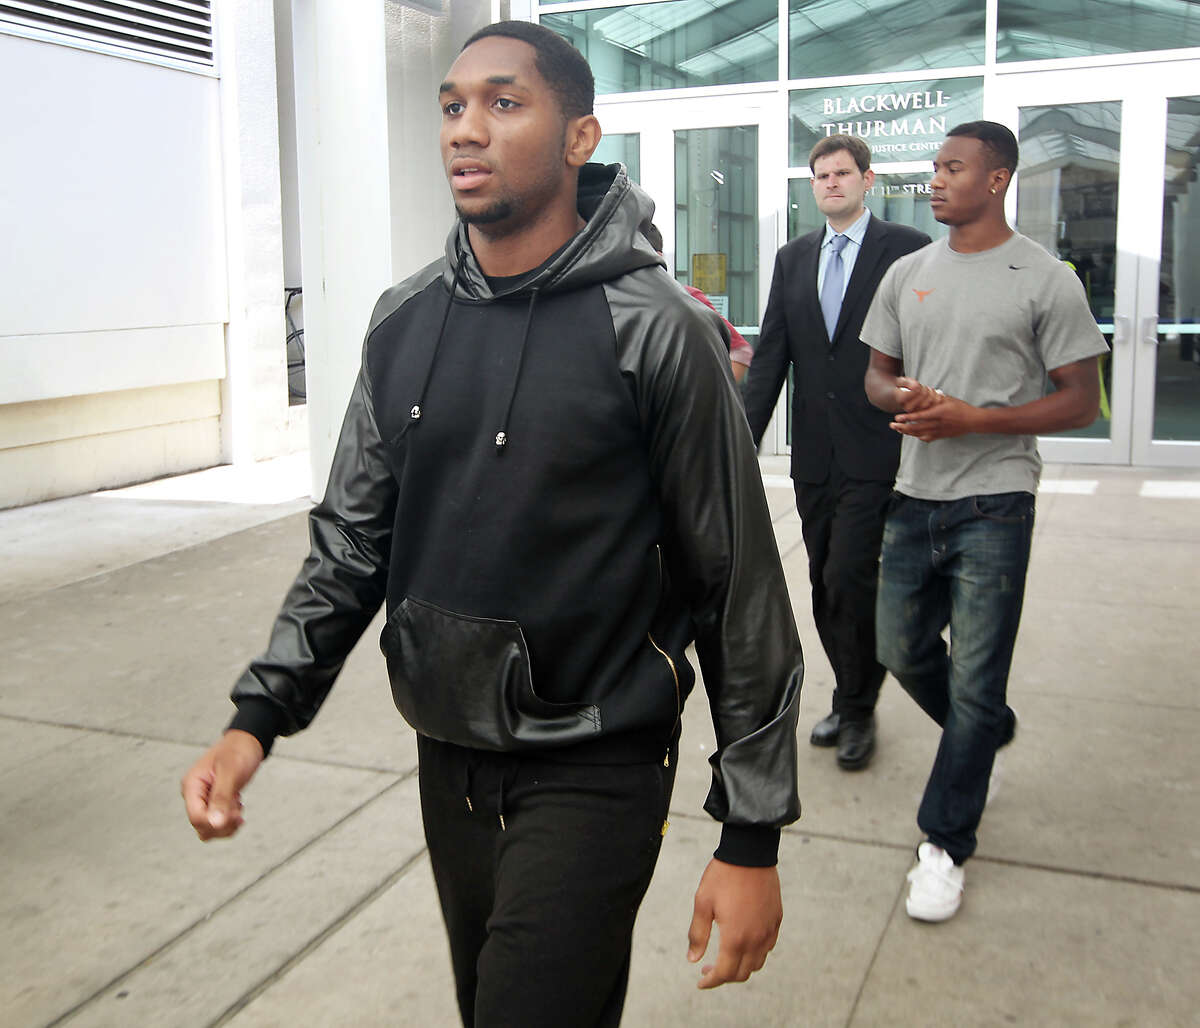 Dec. 15: Ex-UT players face rape charges Kendall Sanders and Montrel Meander, right, leave the Travis County Criminal Justice Center after being booked on July 24, 2014 in Austin.The two former University of Texas football players were charged with felony sexual assault after a female student said she was raped in a campus dorm room in June.Court date carries over into the new year